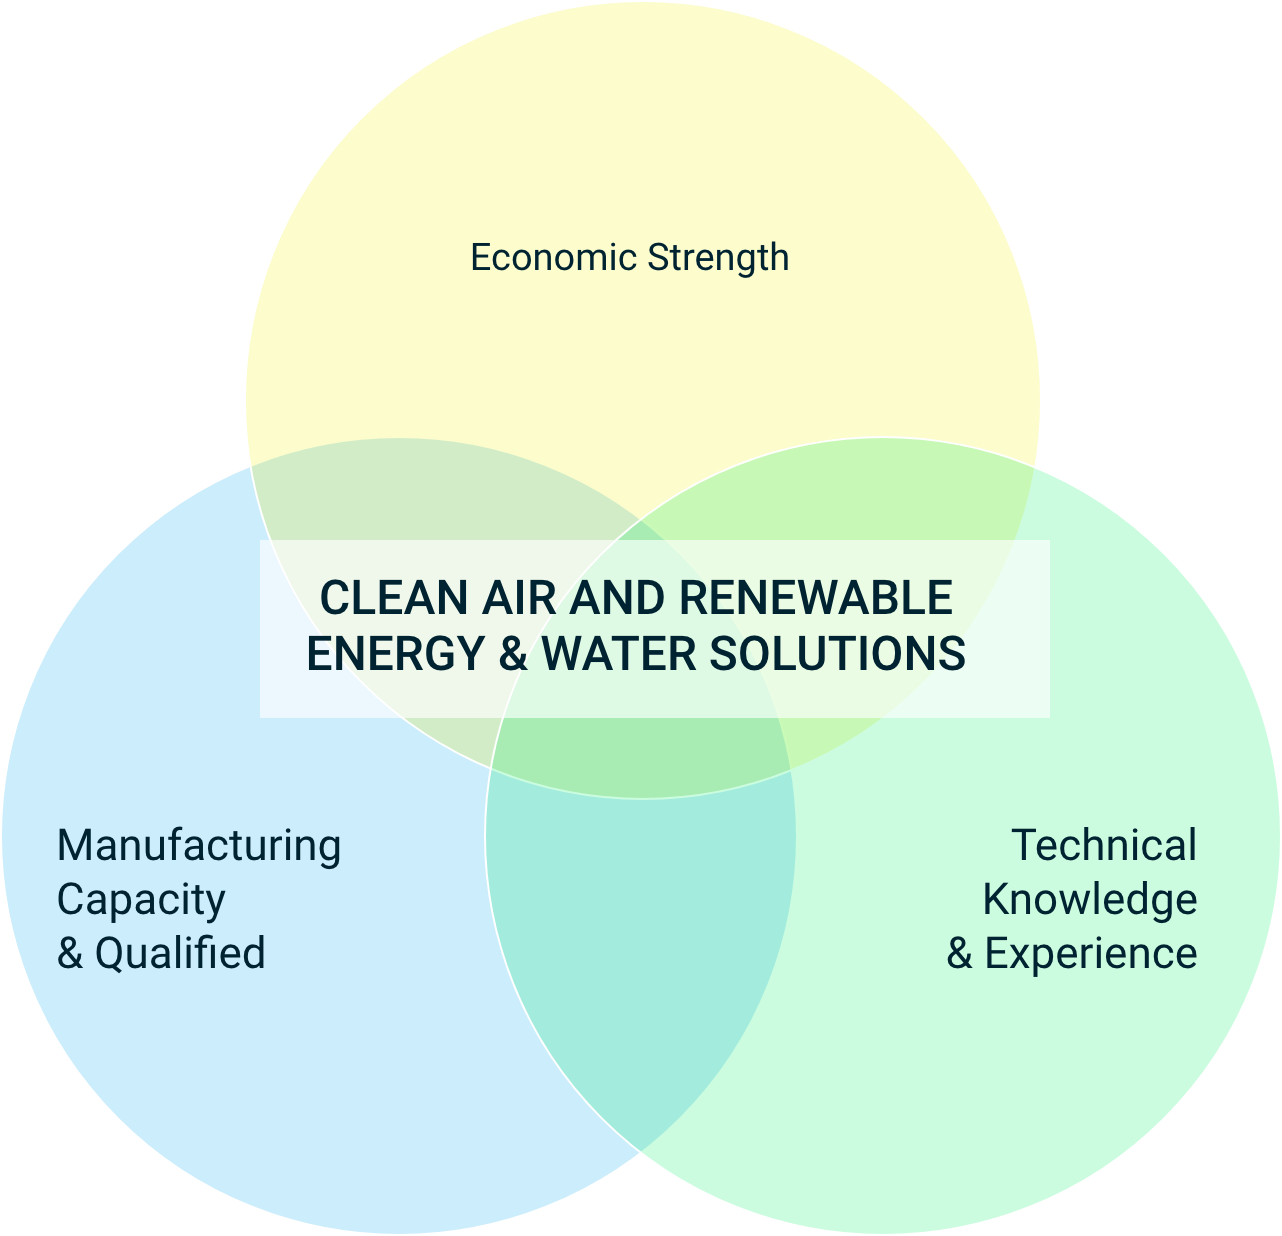 Clean air and renewable energy & water solutions diagram